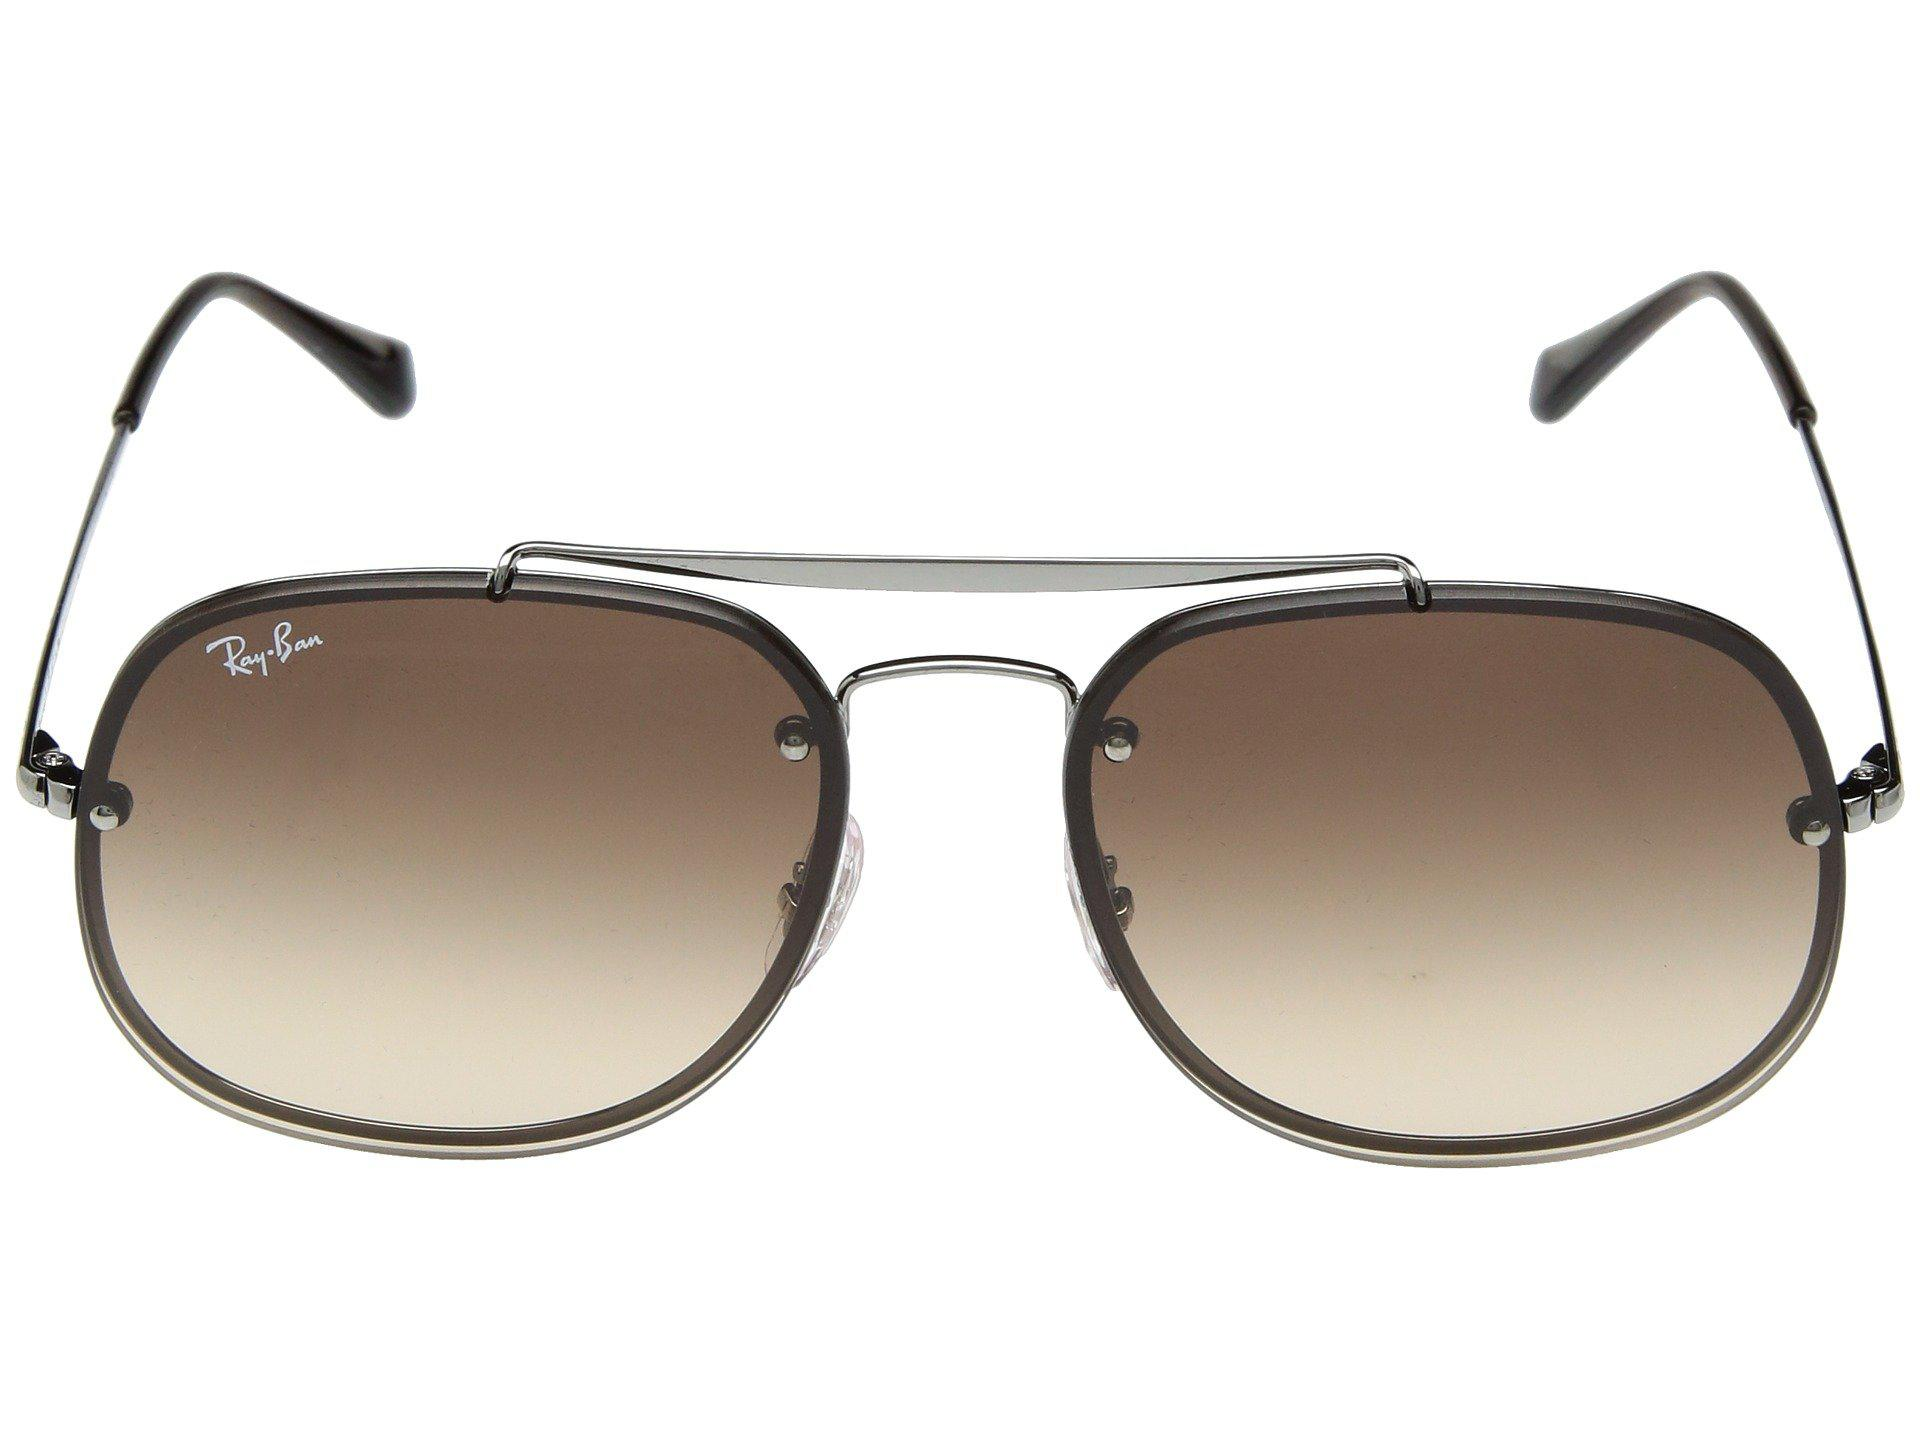 466fd287ba Ray-Ban - Brown Blaze General Rb3583n 58mm (copper clear Gradient Red  Mirror. View fullscreen